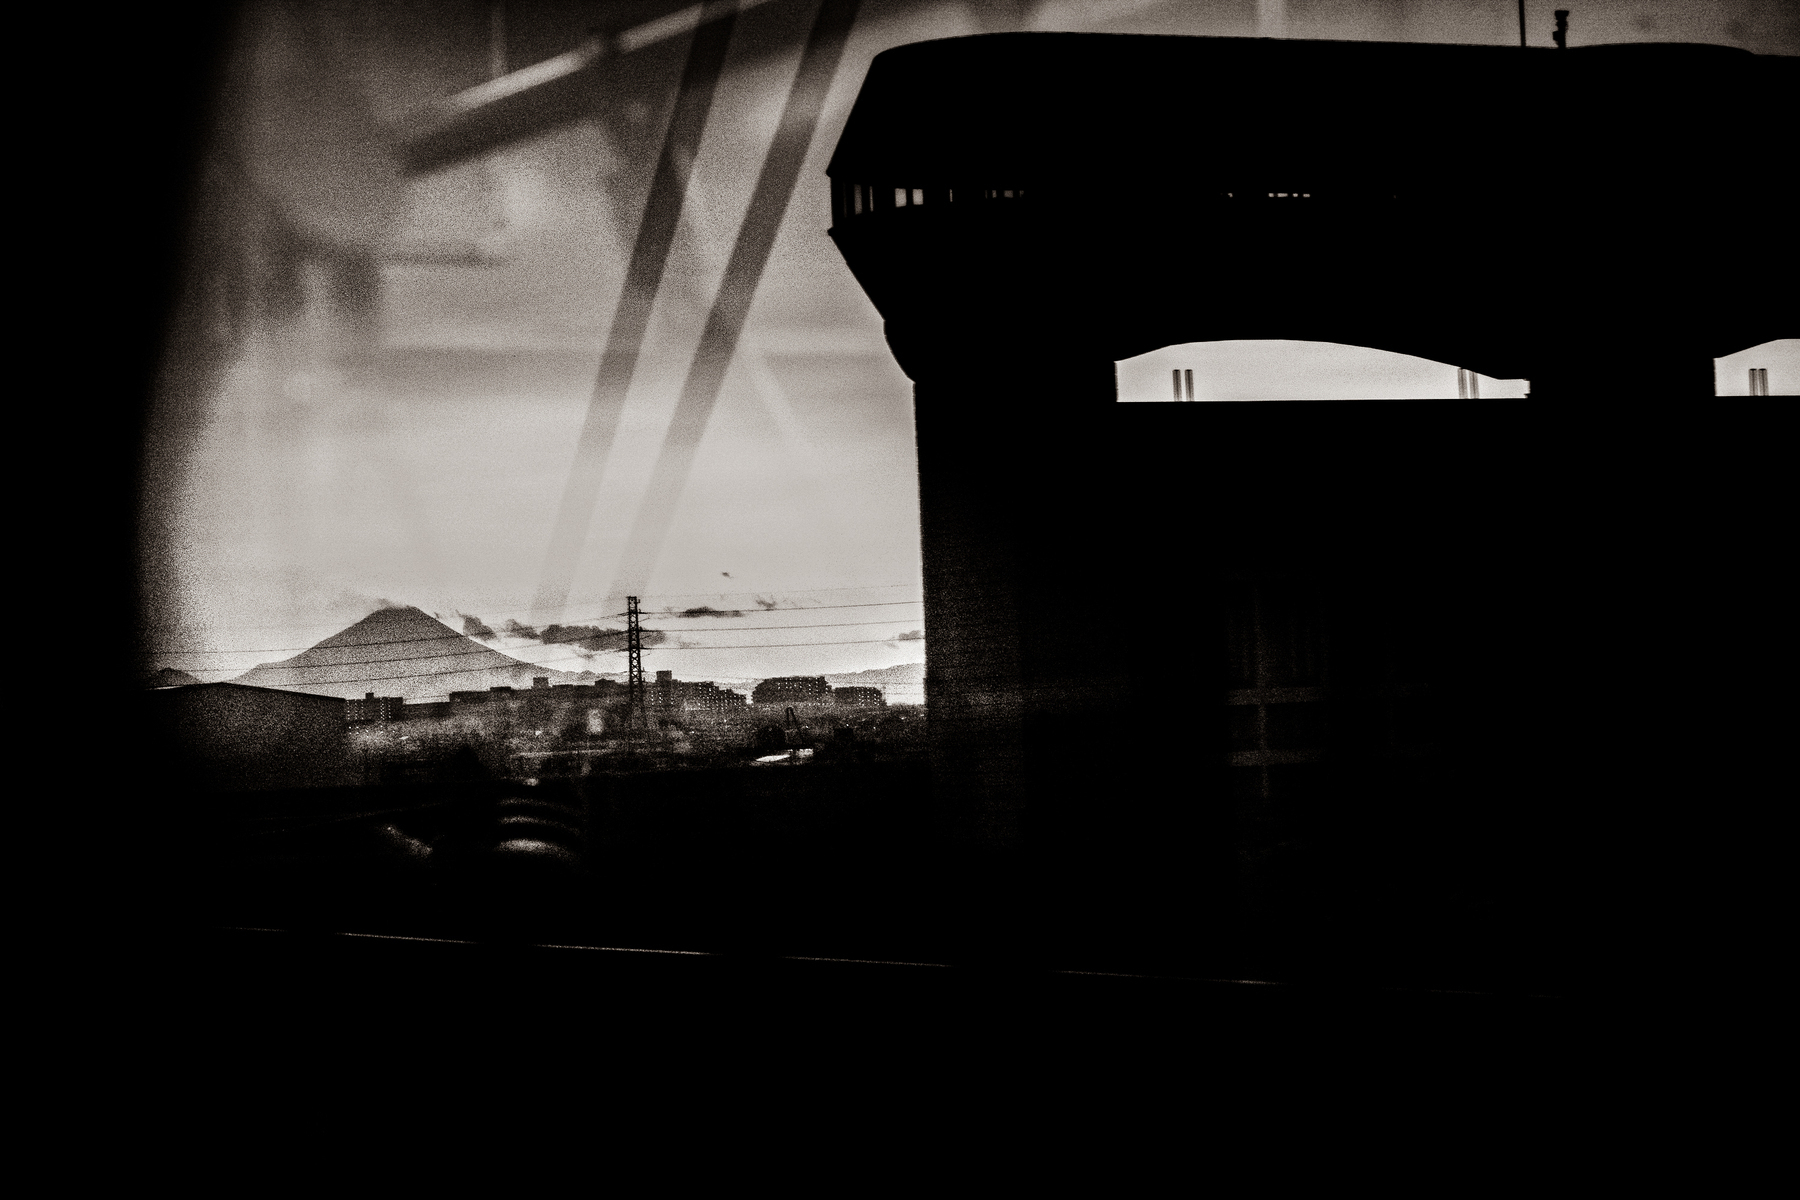 Mt Fuji and a flood control gate, as seen from an elevated train